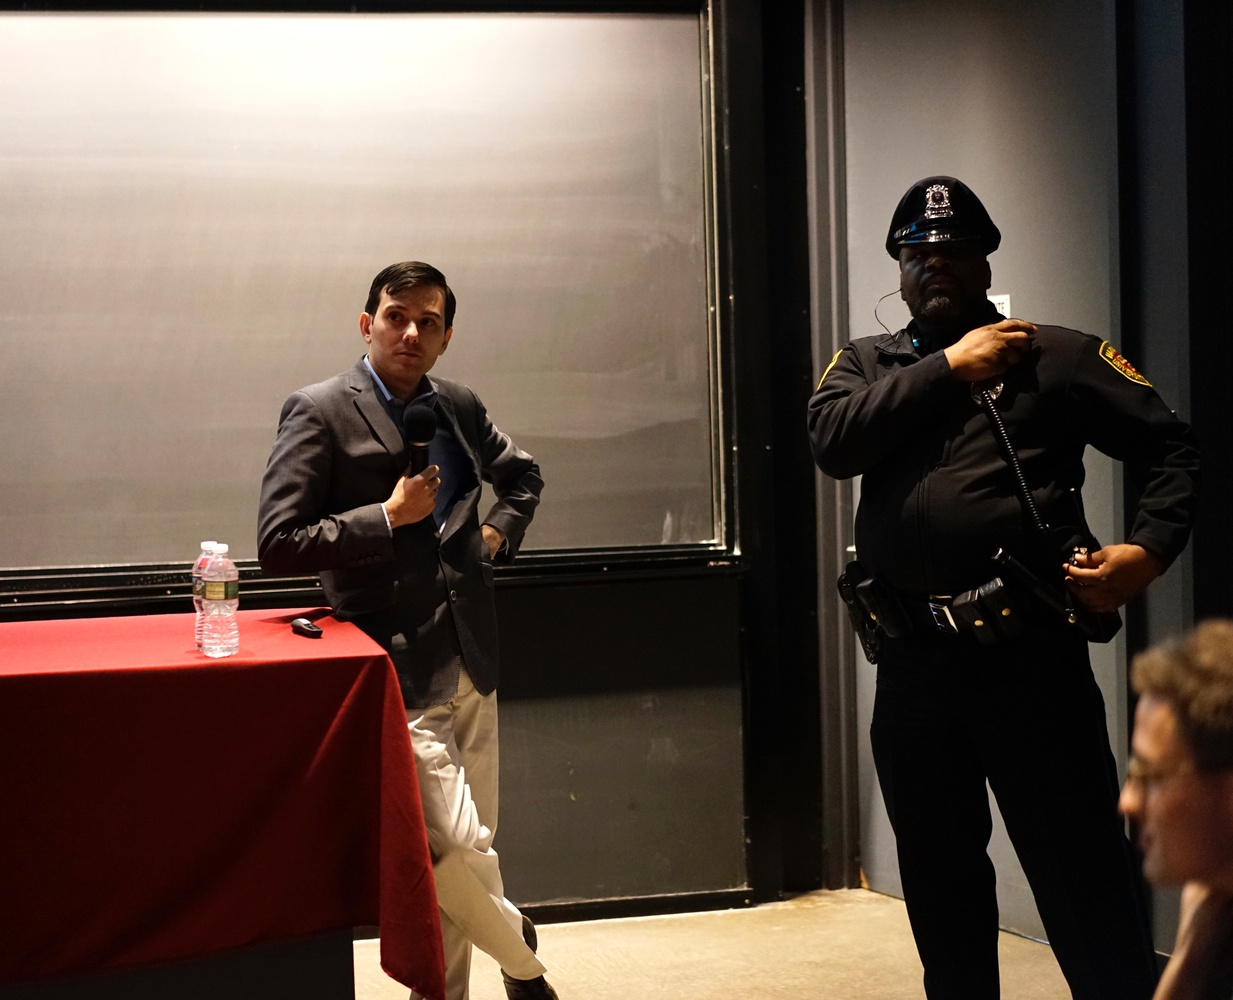 """Martin Shkreli speaks in the Science Center on Wednesday night at an event organized by the Harvard Financial Analysts Club. Protesters disrupted the event, standing up, walking out, and encouraging others to move to a """"teach-in"""" panel on AIDS treatment and unethical pharmaceutical practices."""